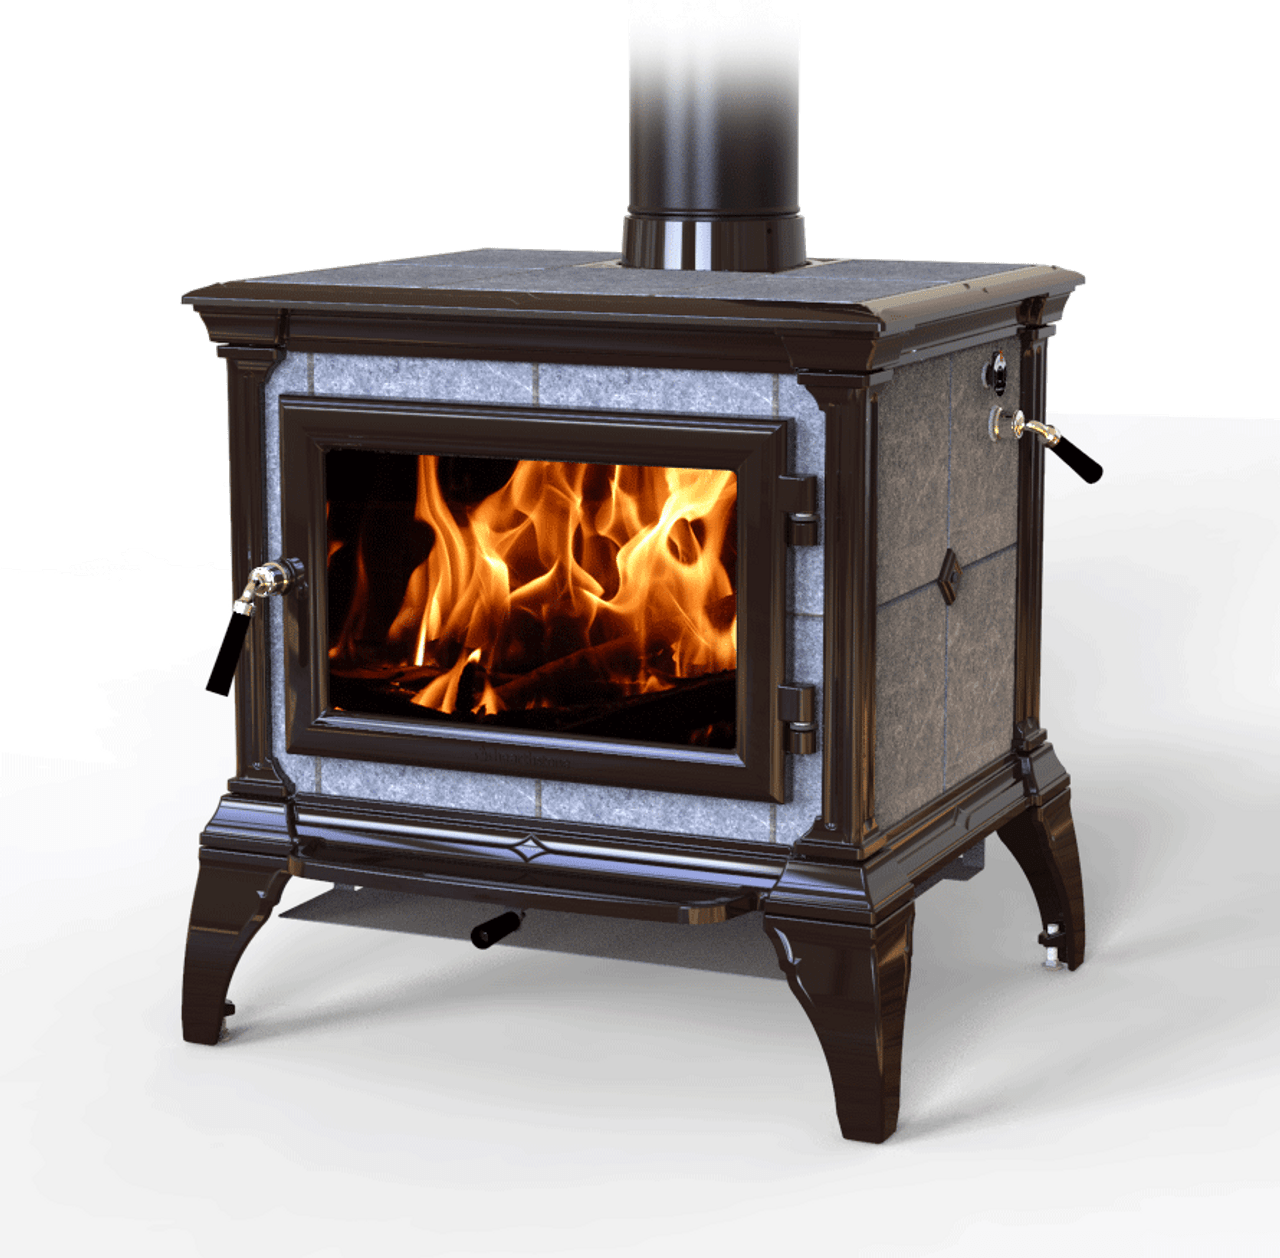 HearthStone Castleton Wood Stove in Brown